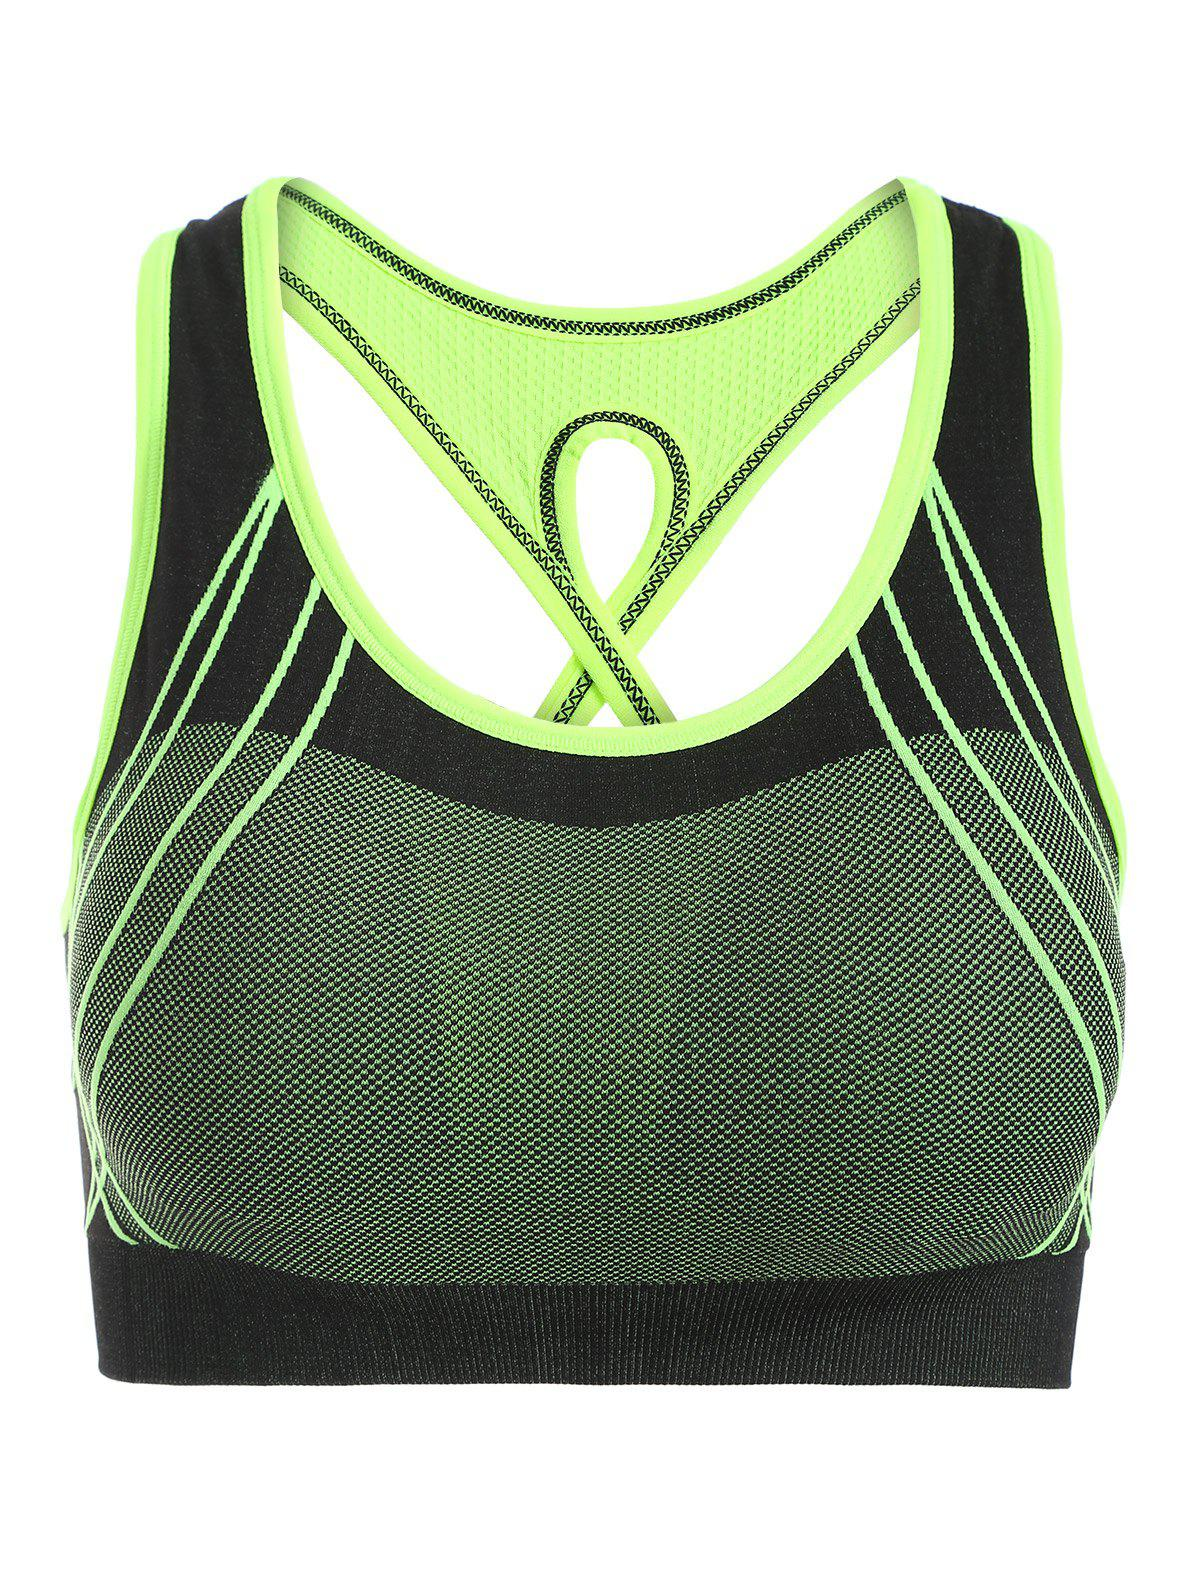 Quick-Dry Criss Cross Shockproof Sports Push Up Bra - GREEN M